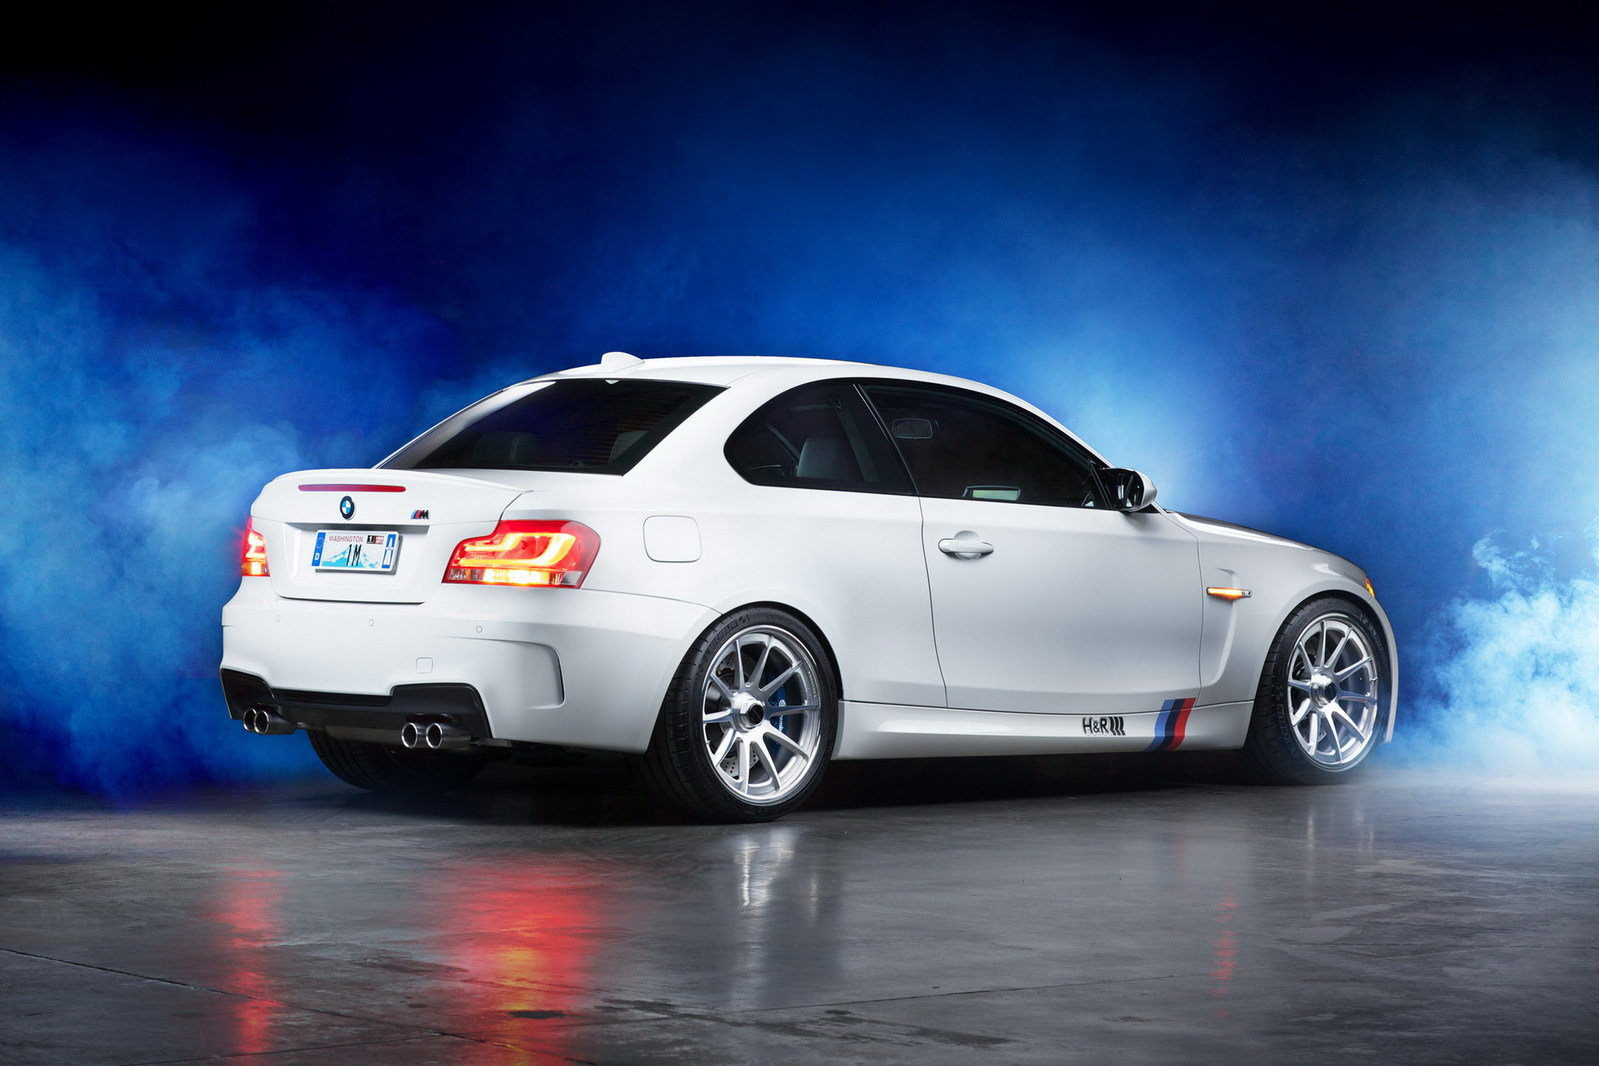 http://pictures.topspeed.com/IMG/crop/201206/free-bmw-1m-poster-f_1600x0w.jpg